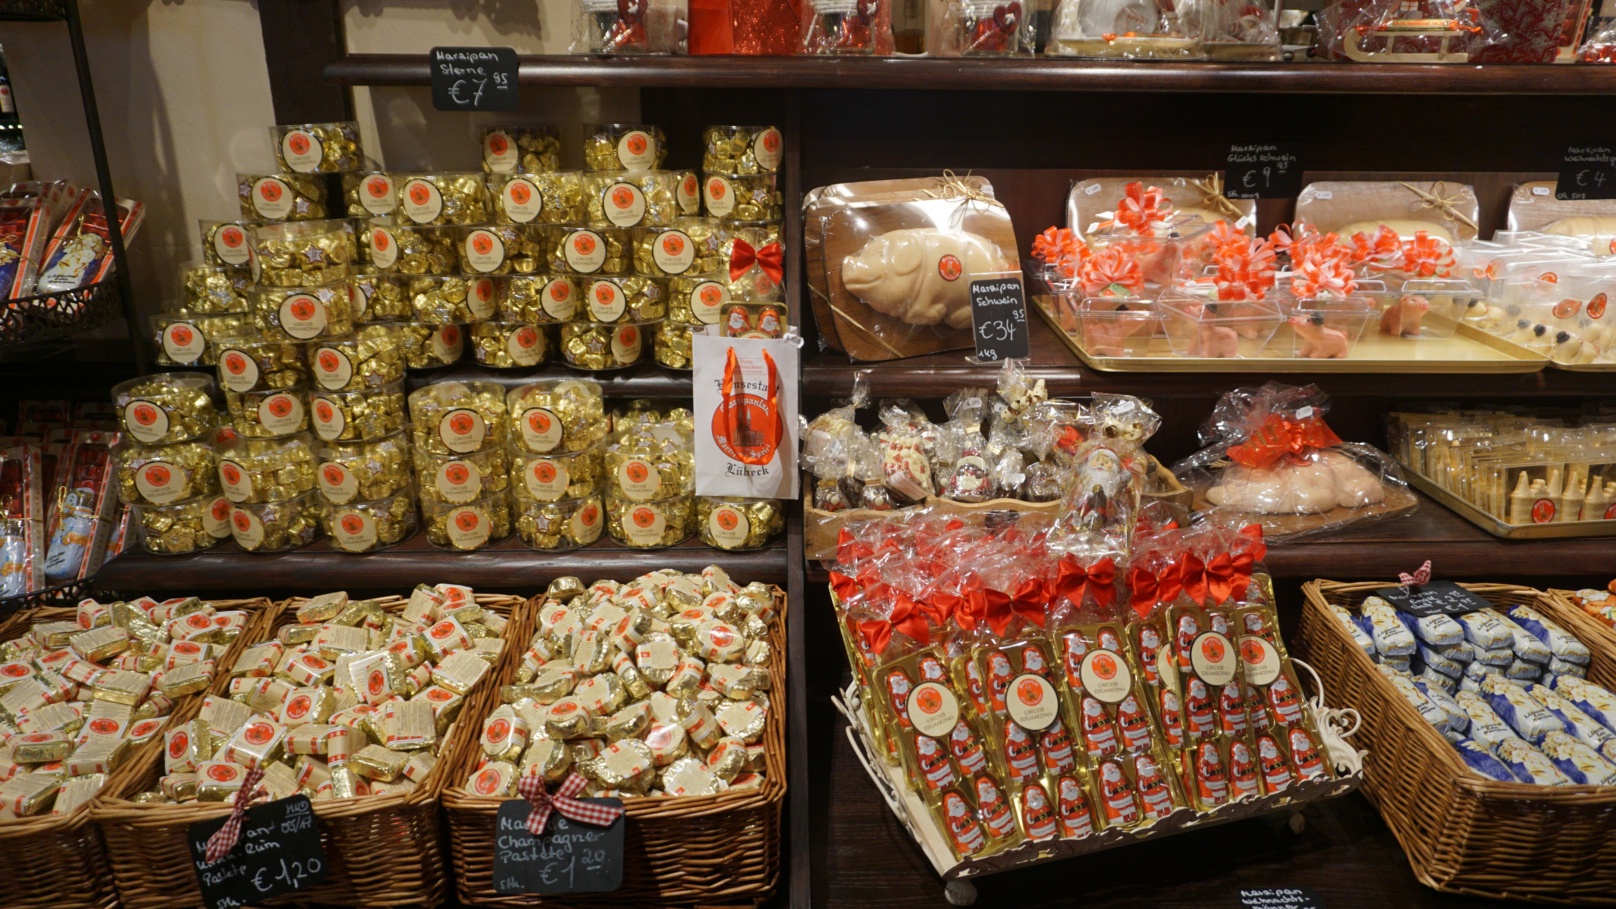 All the marzipan you could want at Die Lübecker Marzipan-Speicher!